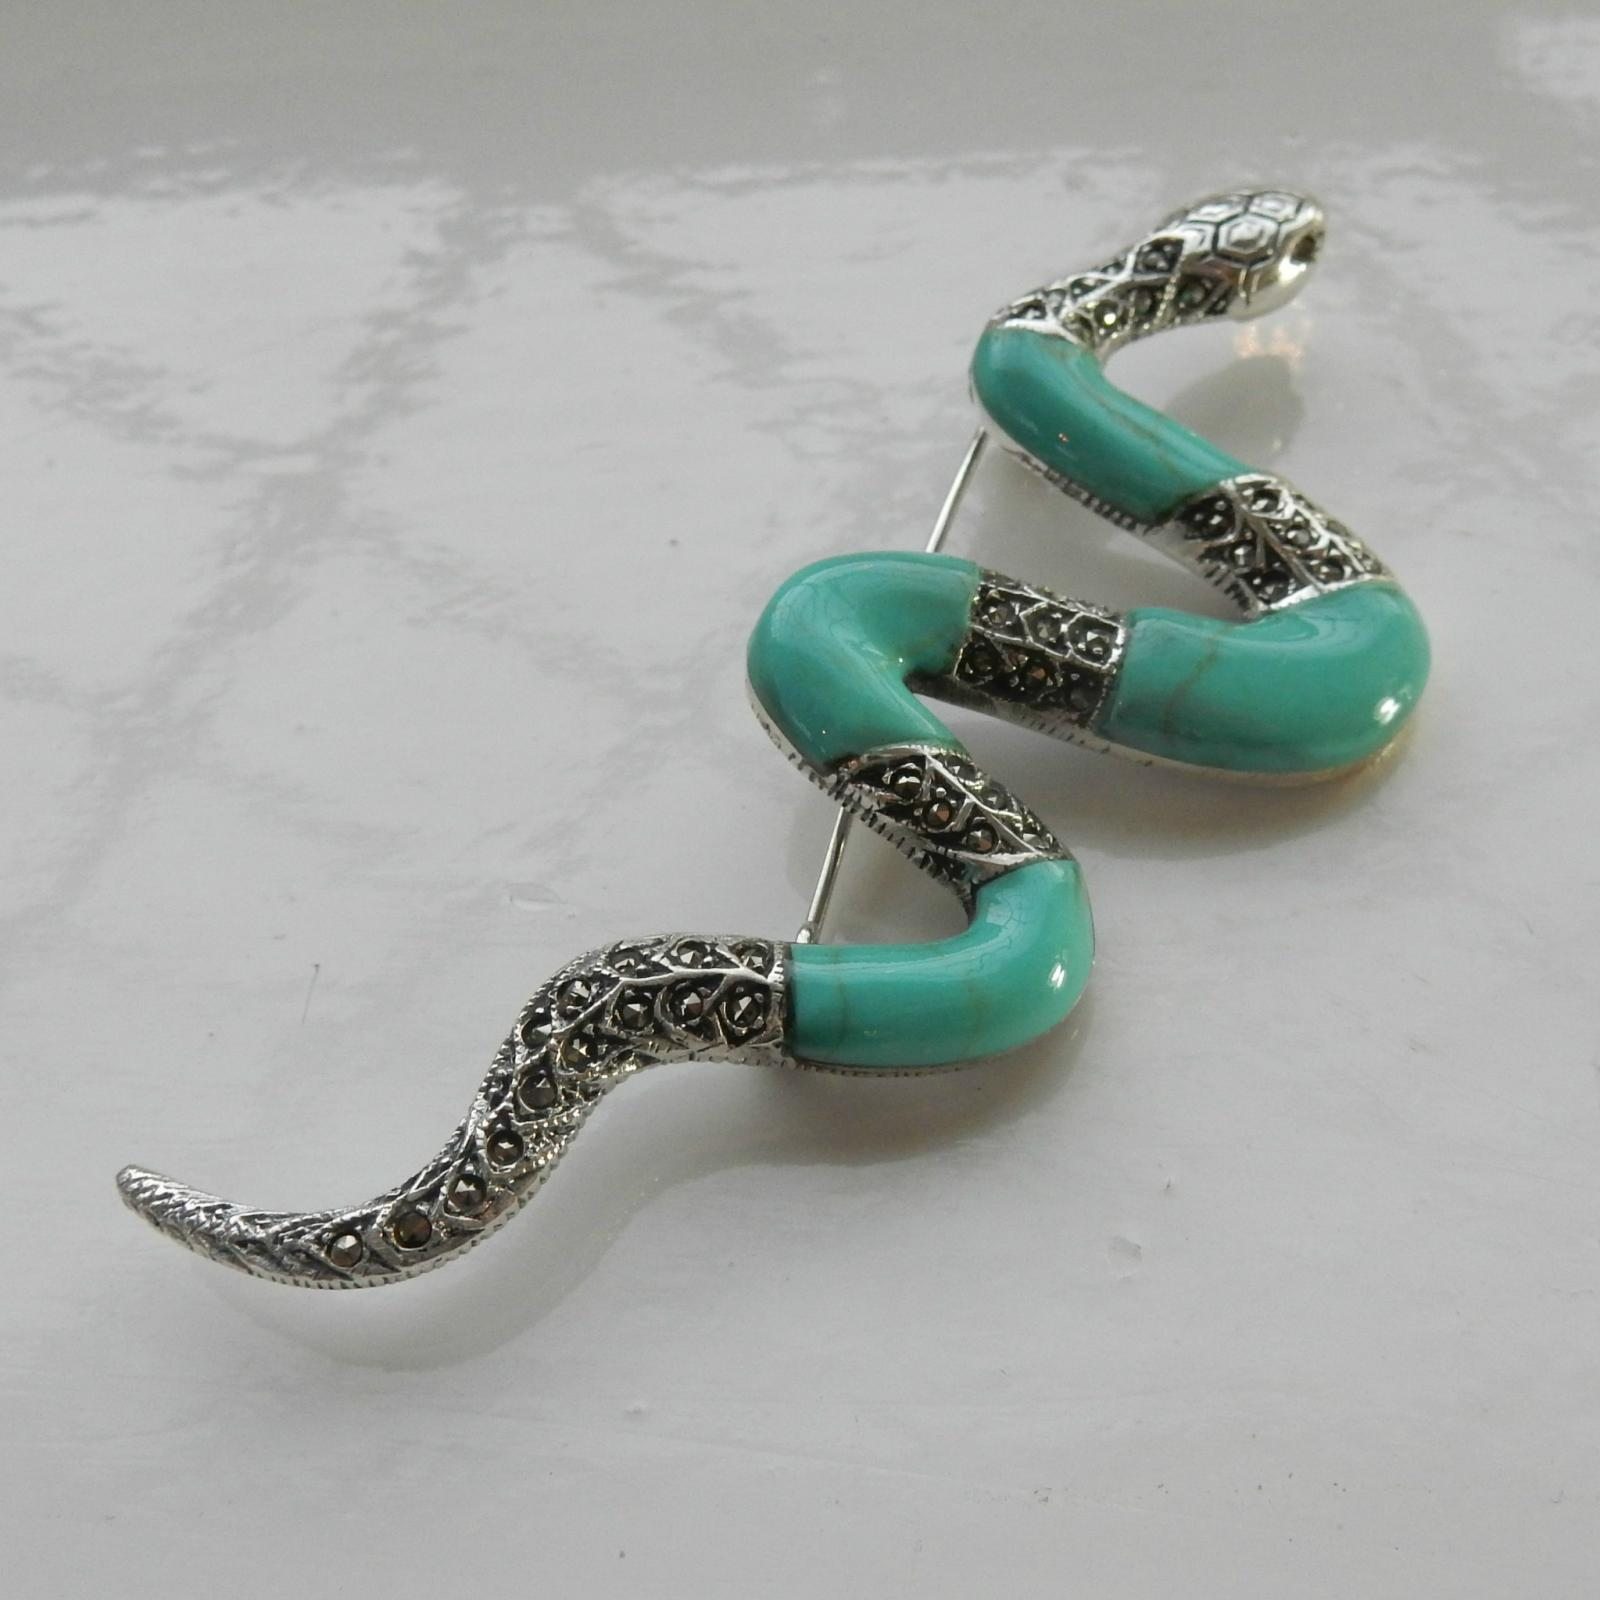 Photo of Art Deco Turquoise Serpent Brooch